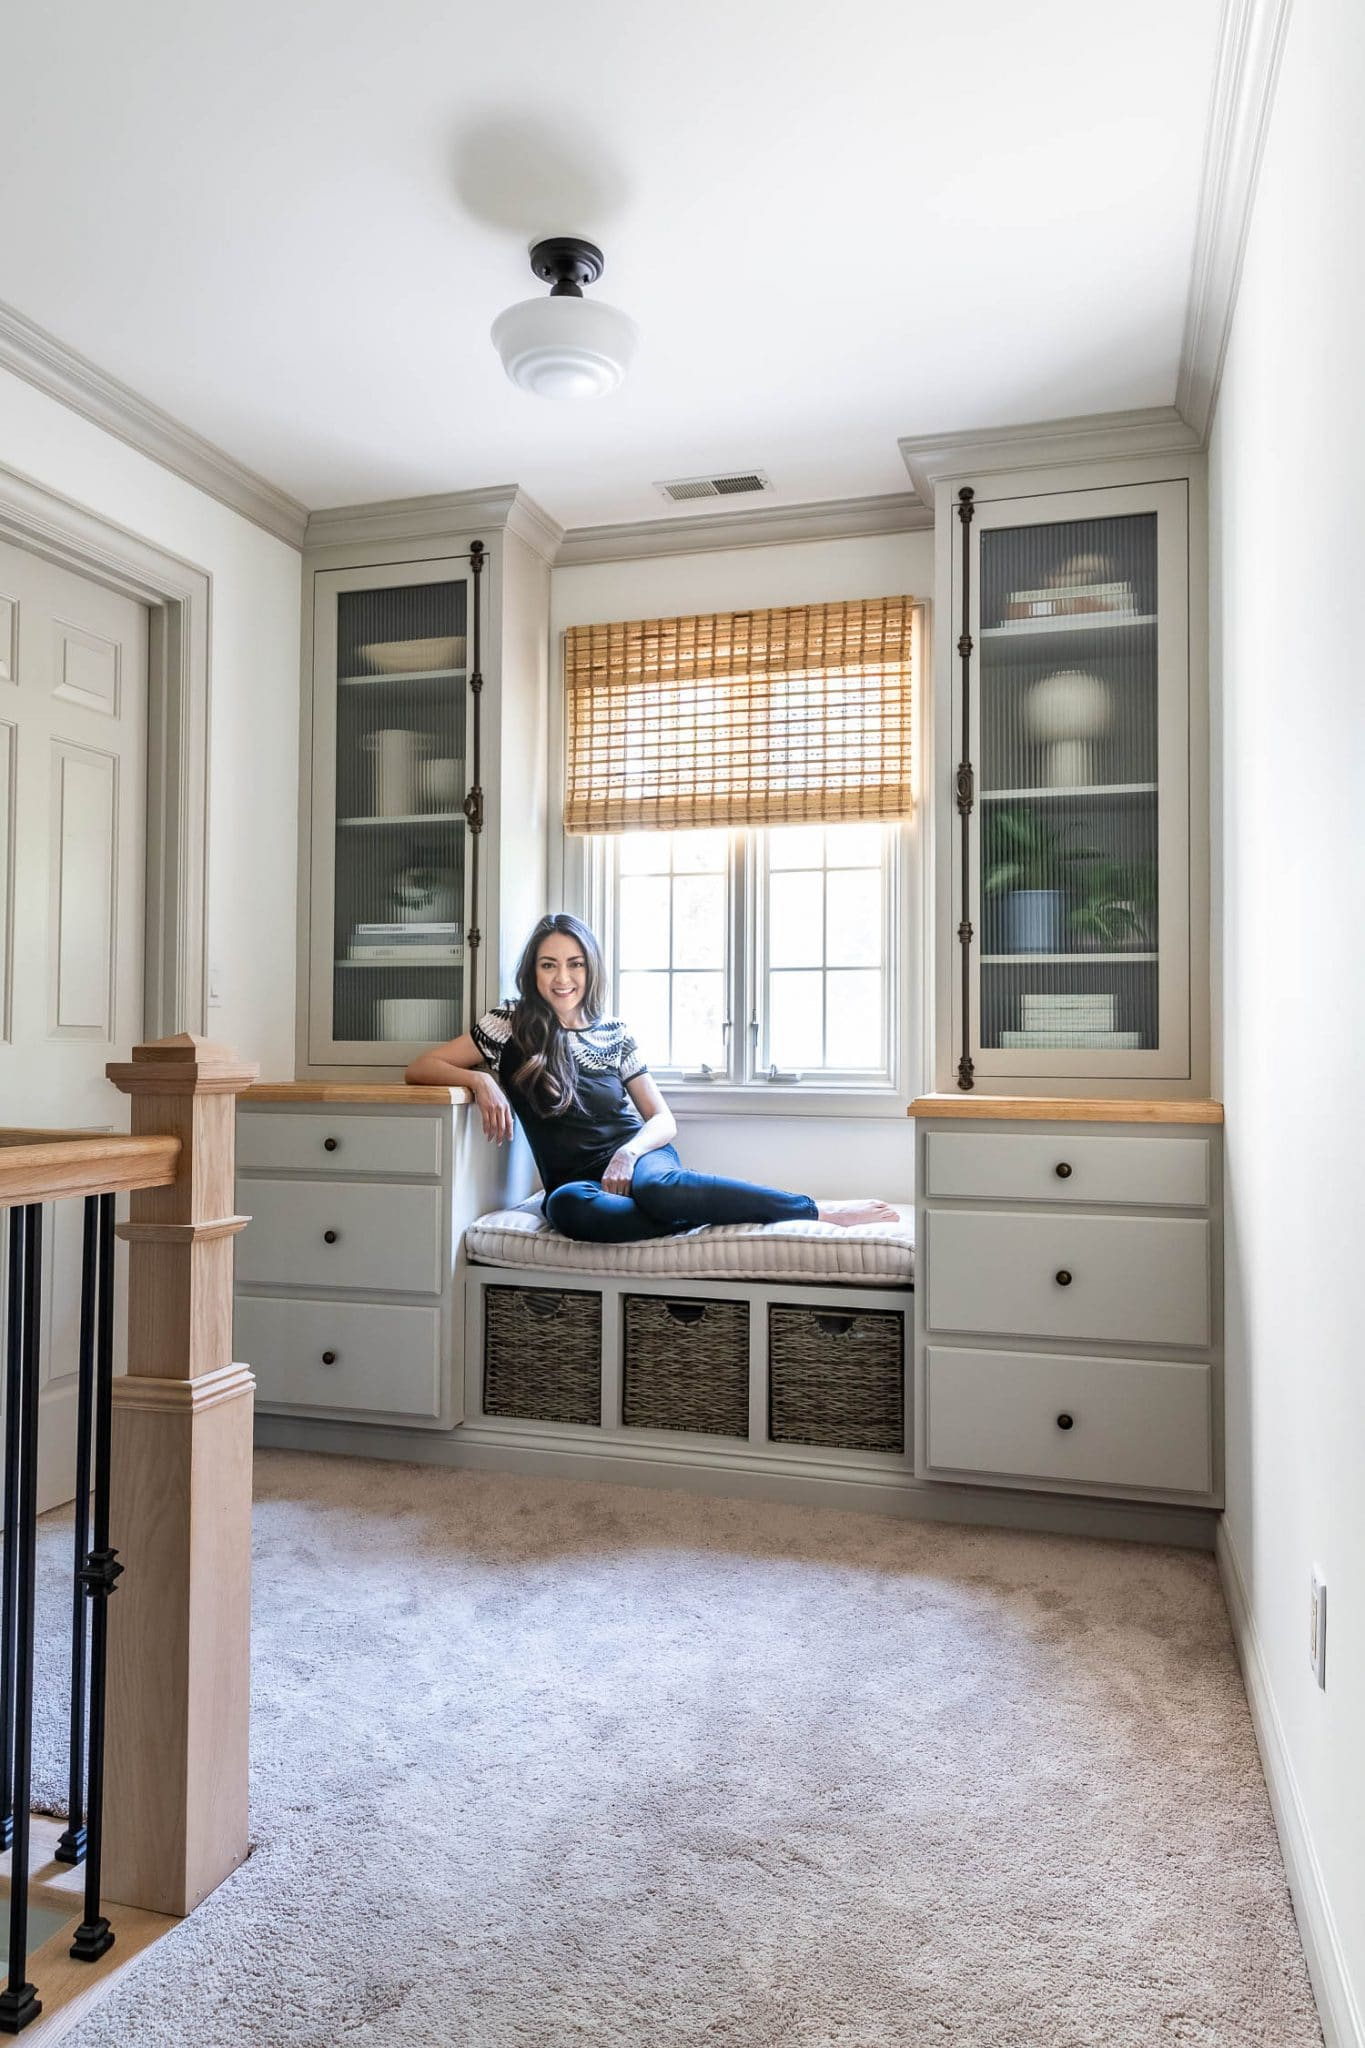 DIY Built-In Bookcases, Cabinets, and Window Bench